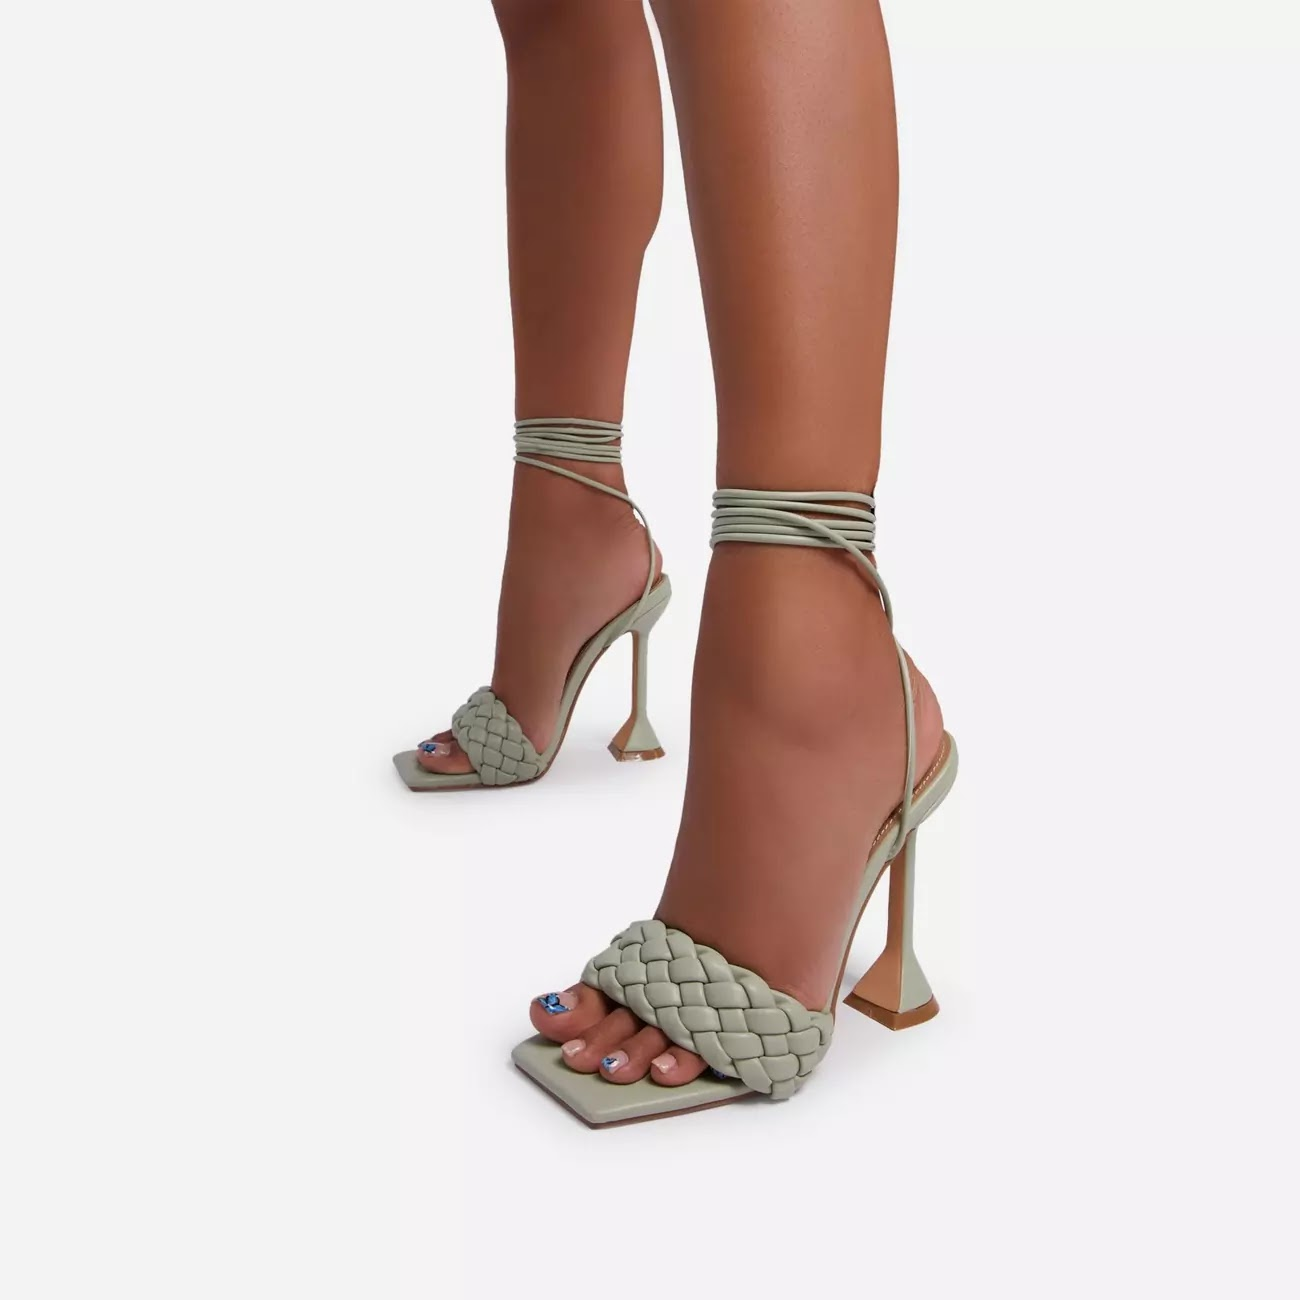 https://ego.co.uk/hab515-master-lace-up-square-toe-woven-pyramid-heel-in-sage-green-faux-leather.html?awc=7576_1598479531_1cb6f02c92344a256bb45bbf26a0a2f0&utm_source=awin&utm_medium=affiliate&utm_campaign=637679